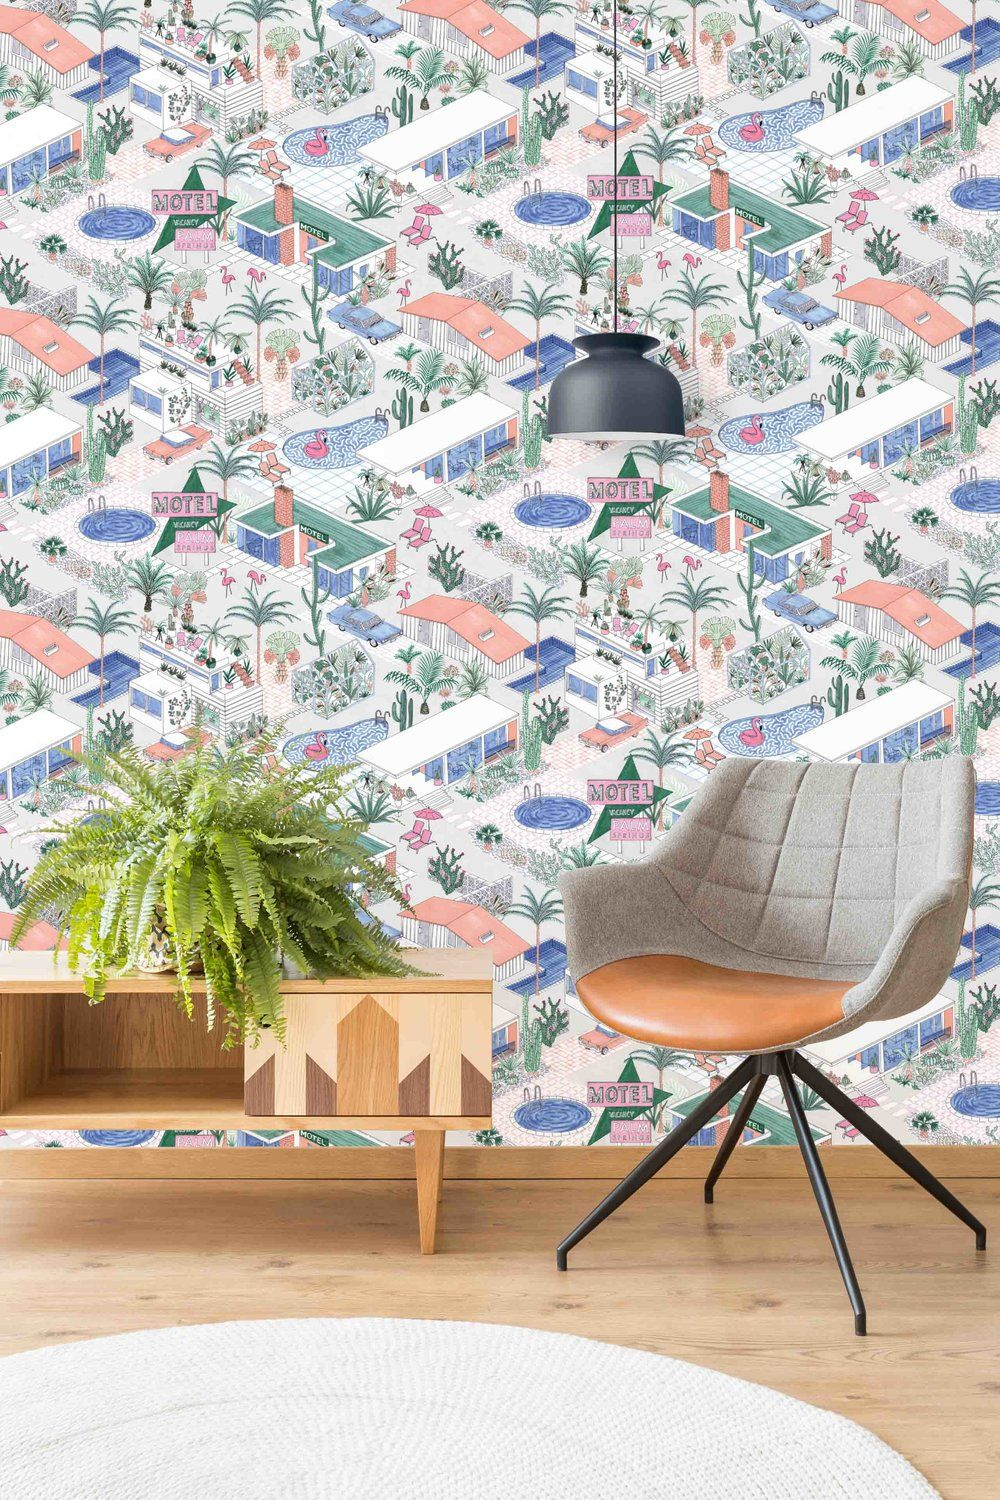 Palm Springs Pastel Paradise by Jacqueline Colley for